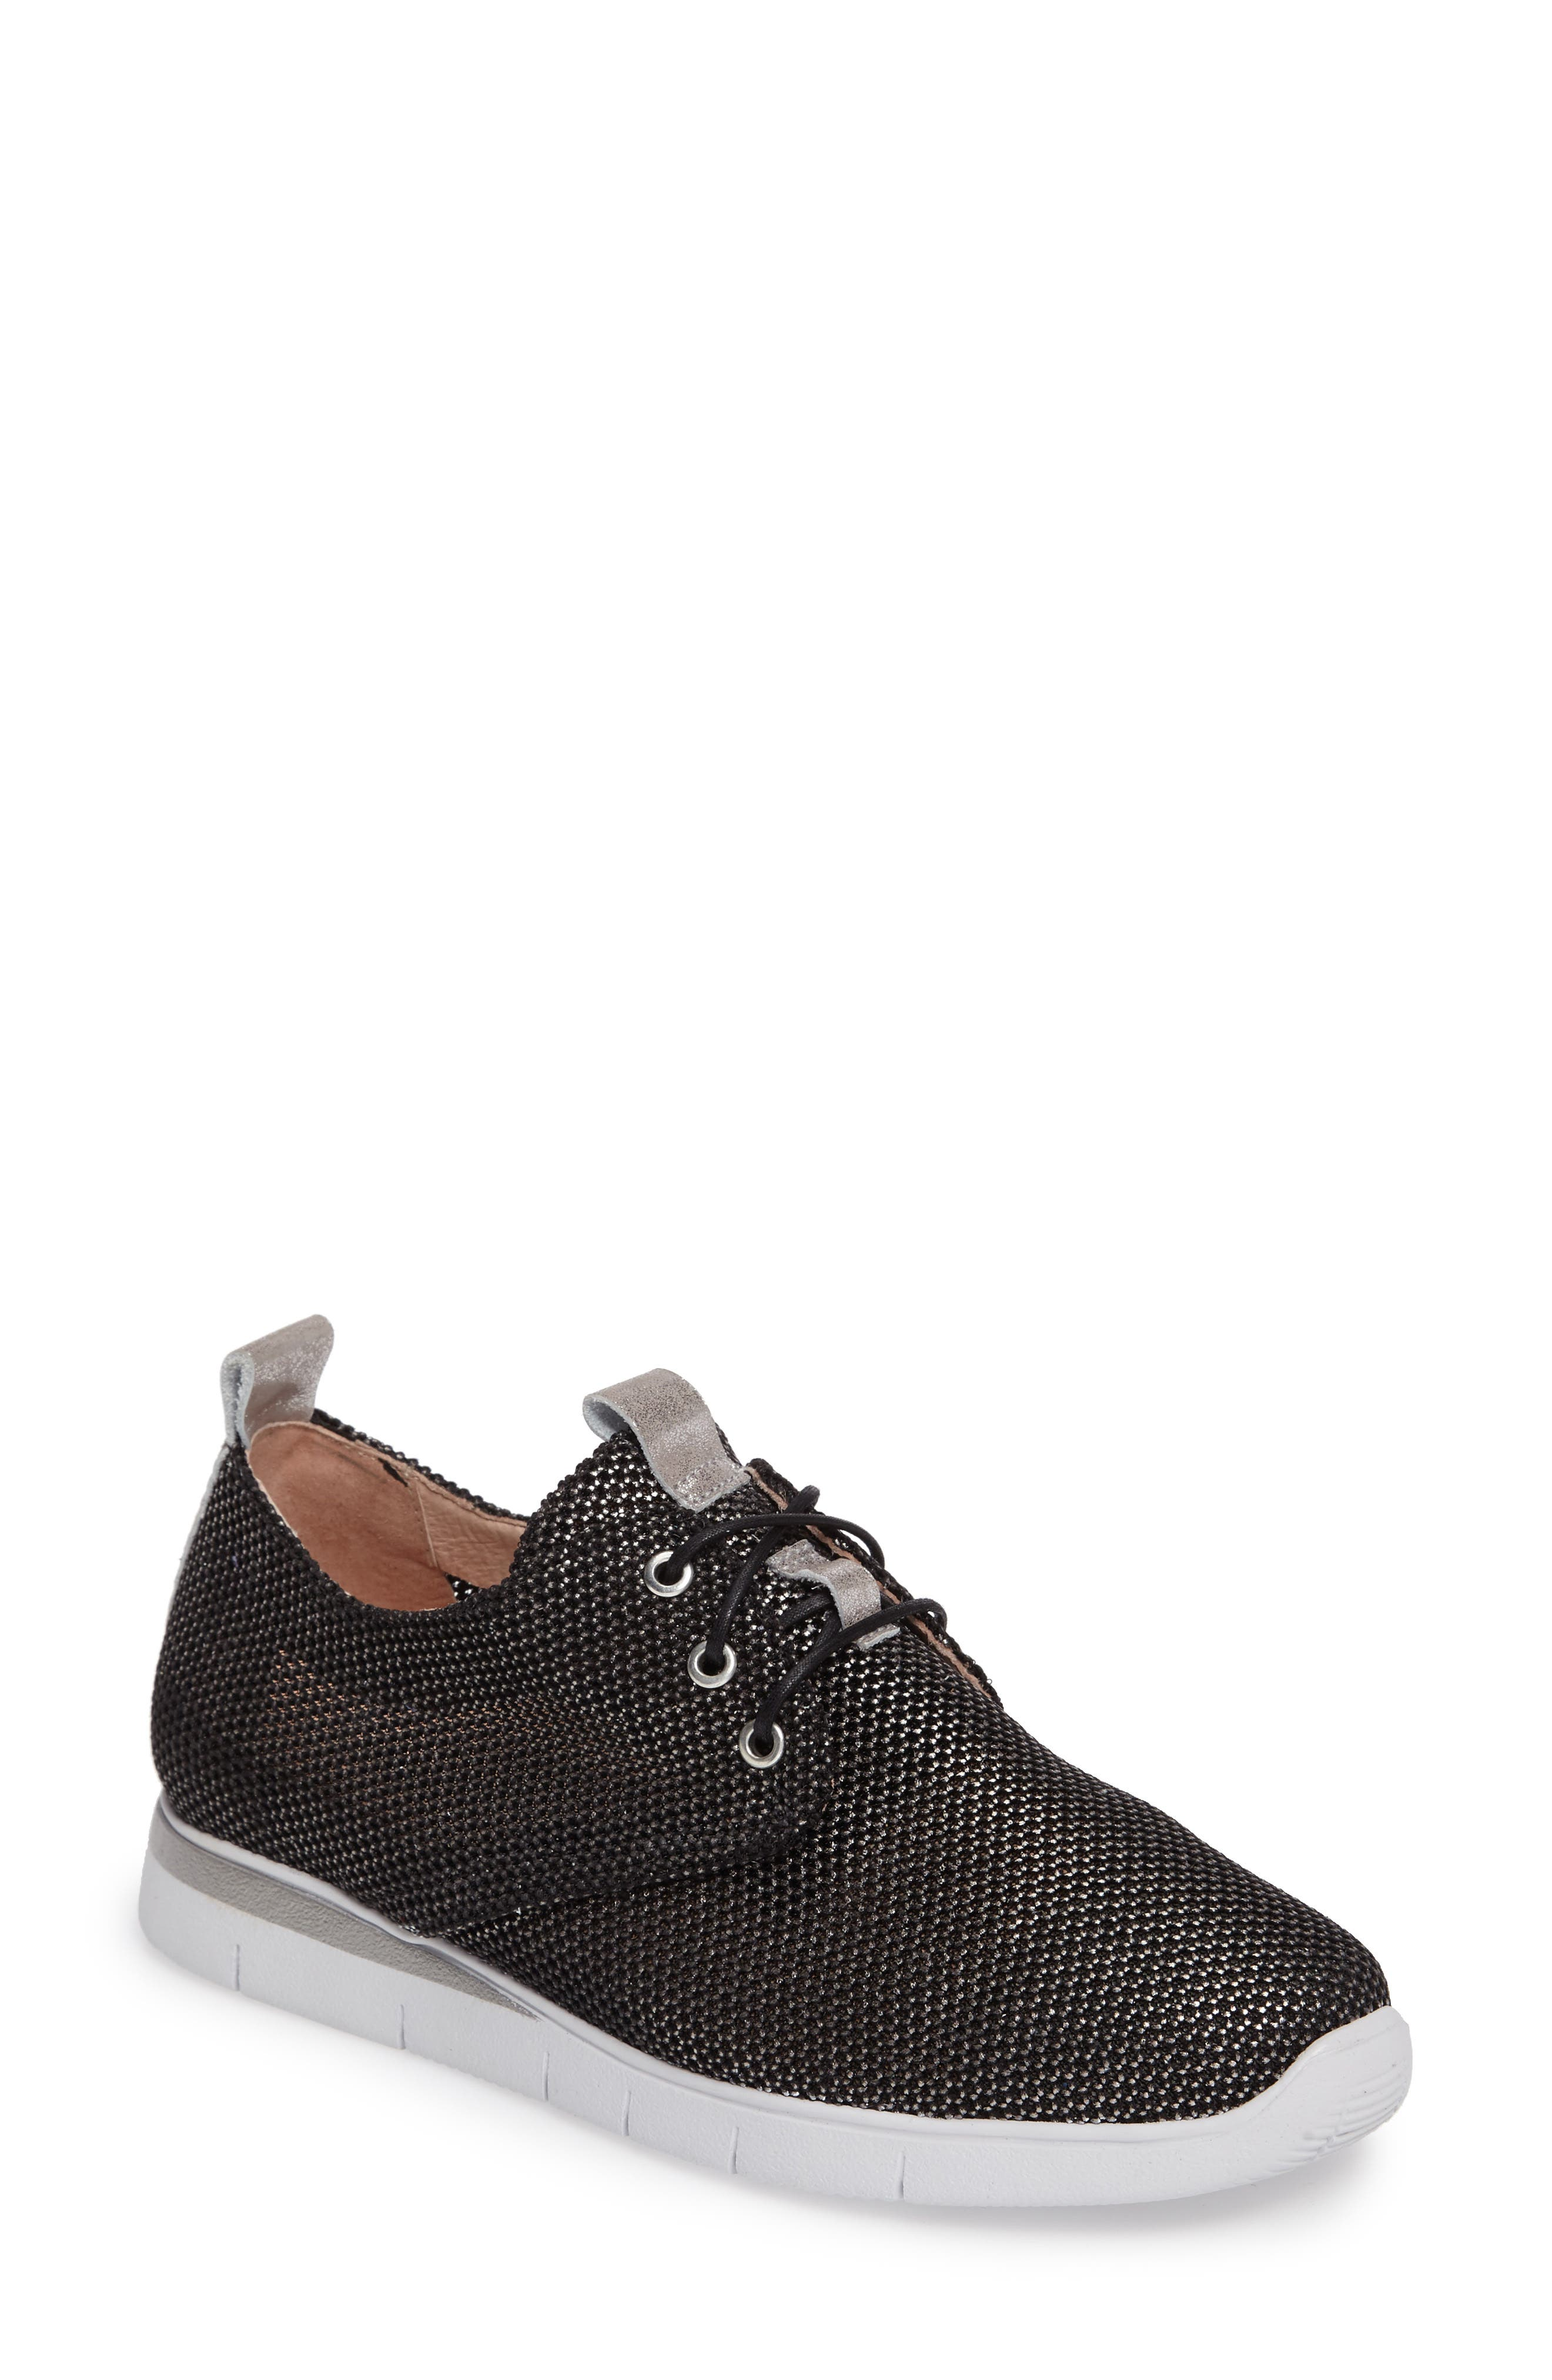 Gala Perforated Sneaker,                         Main,                         color, Bionic Black Leather